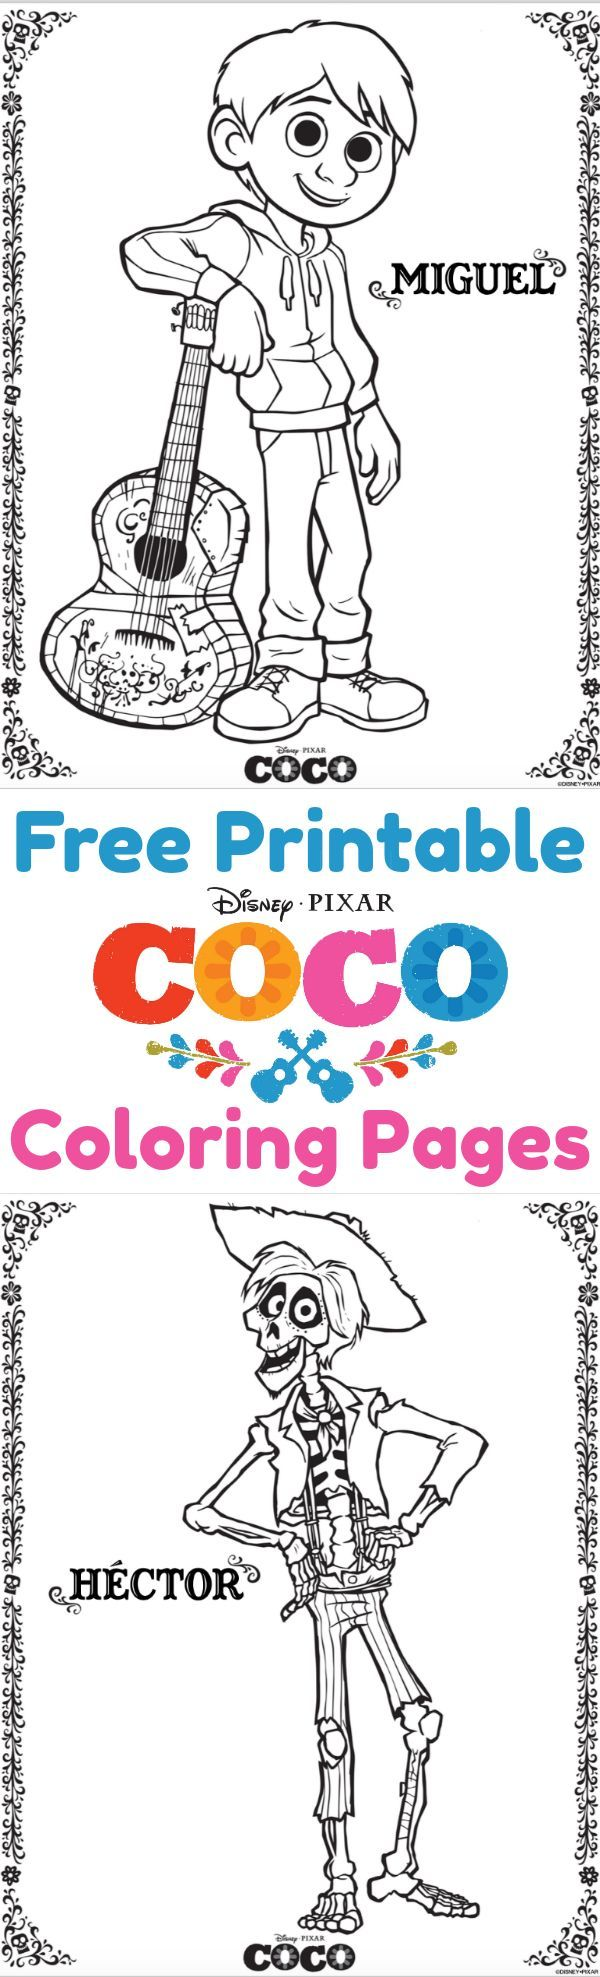 Download Free Coco Coloring Pages And Activity Your Kids Color Their Favorite Characters